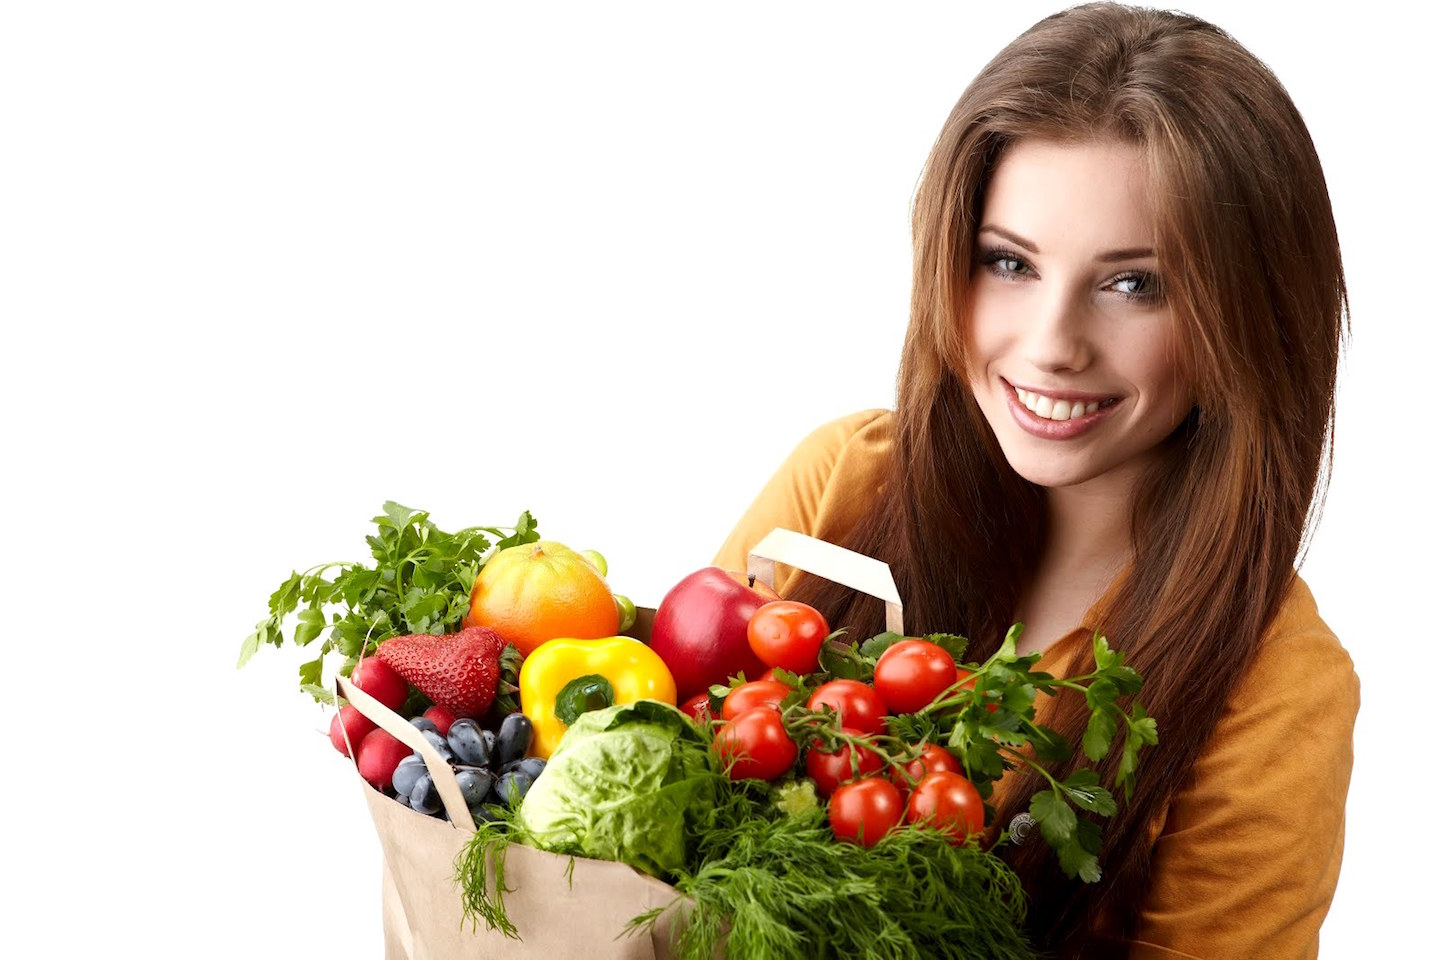 woman and groceries Is the ADD Diet For You? main image